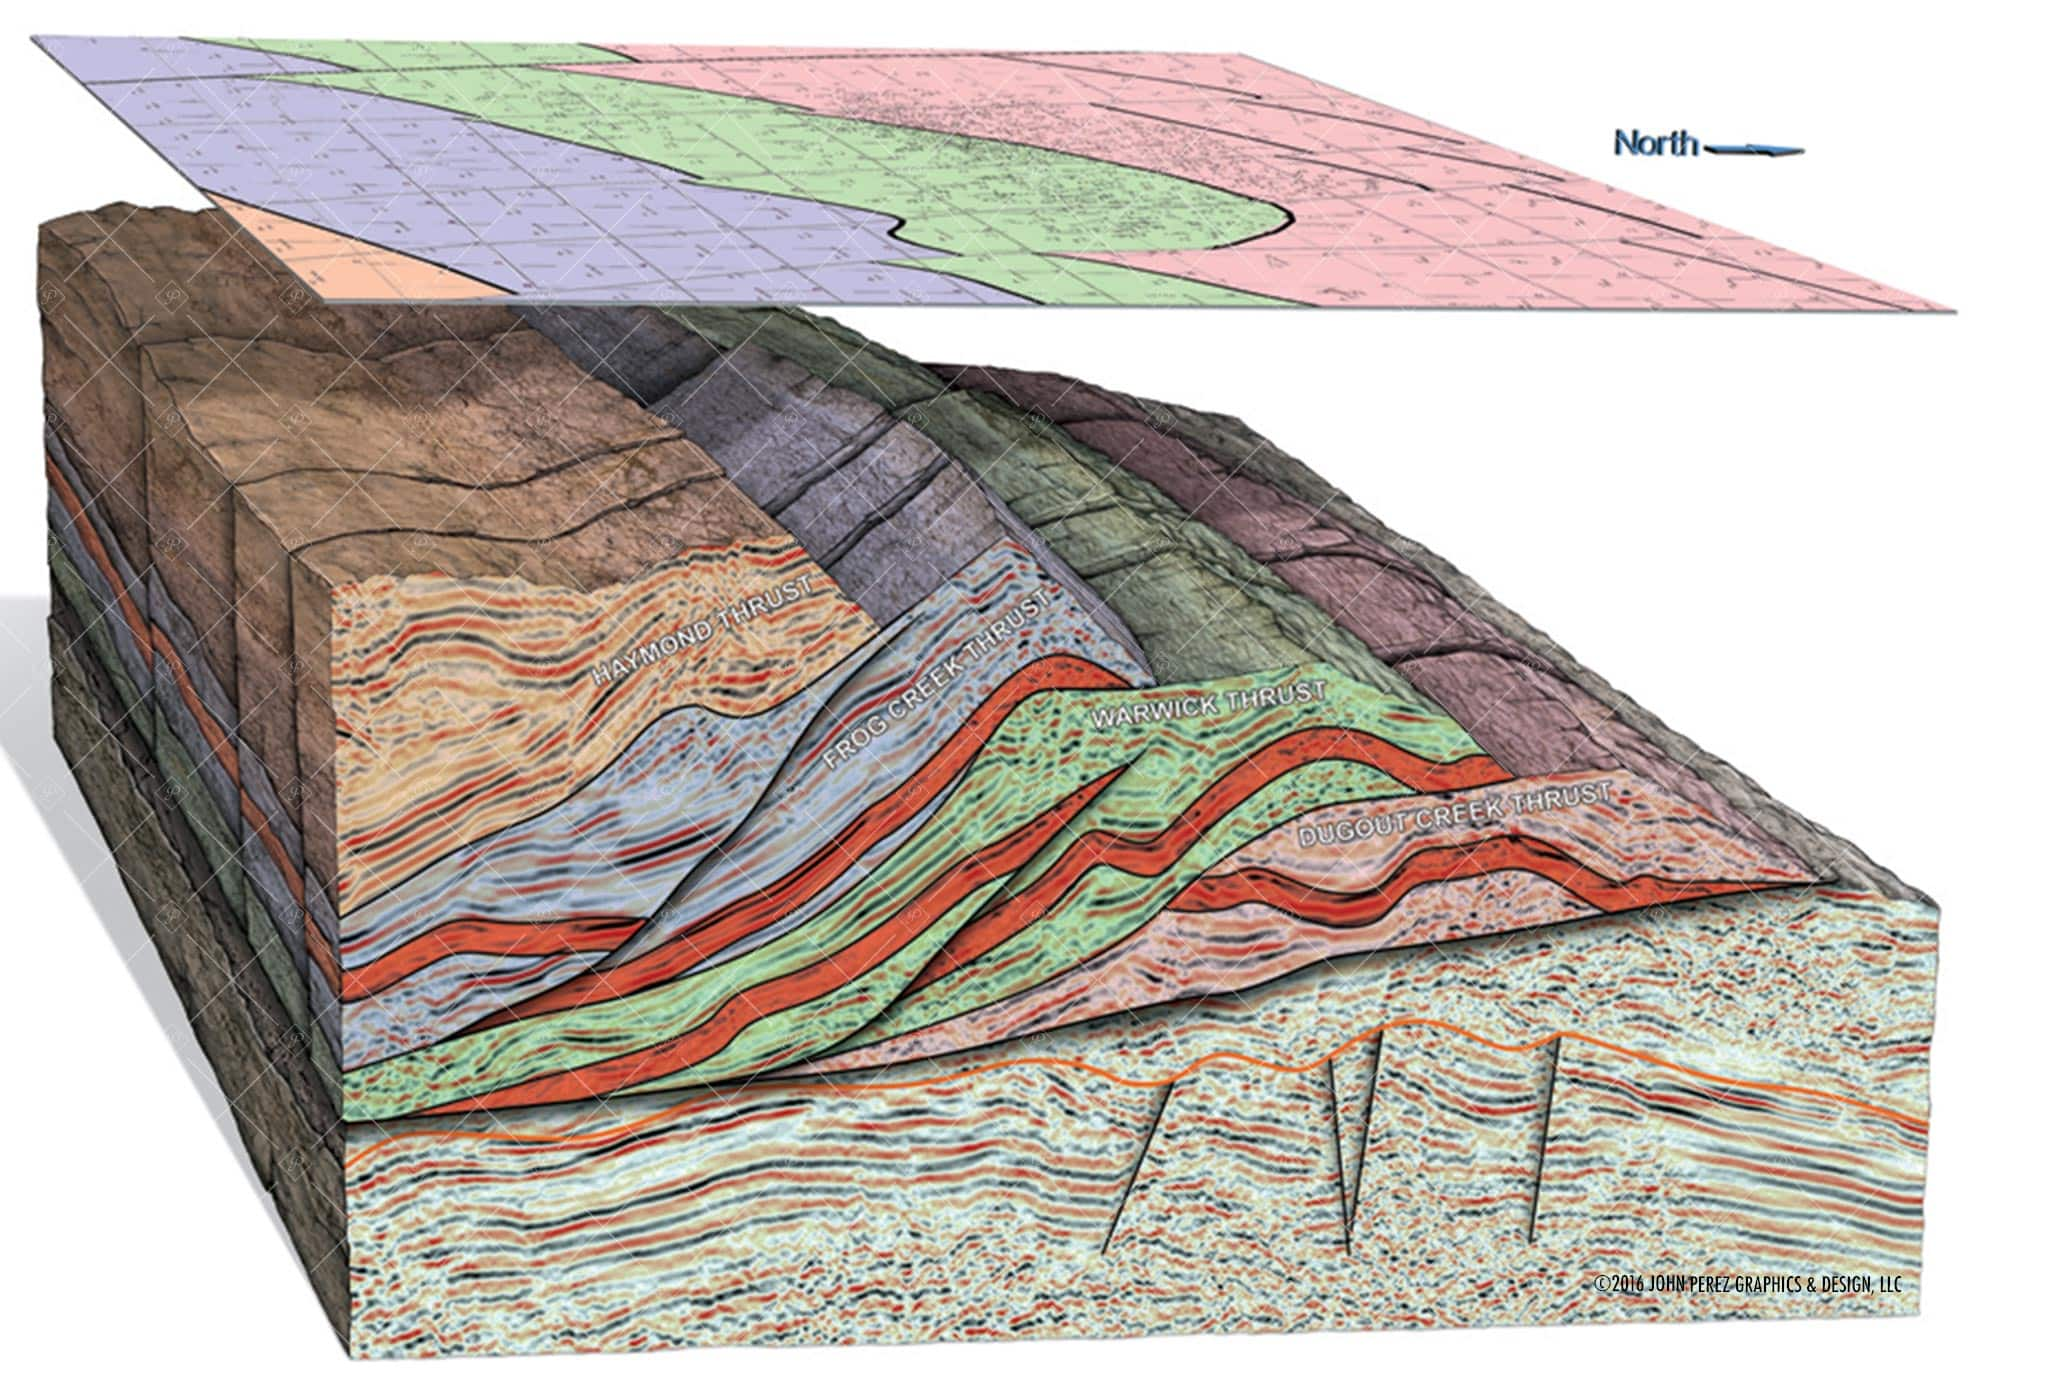 Permian Basin Region Thrust Schematic, drilling geology, oil and gas graphics, oil and gas schematics, permian basin, john perez graphics, Permian Basin Map